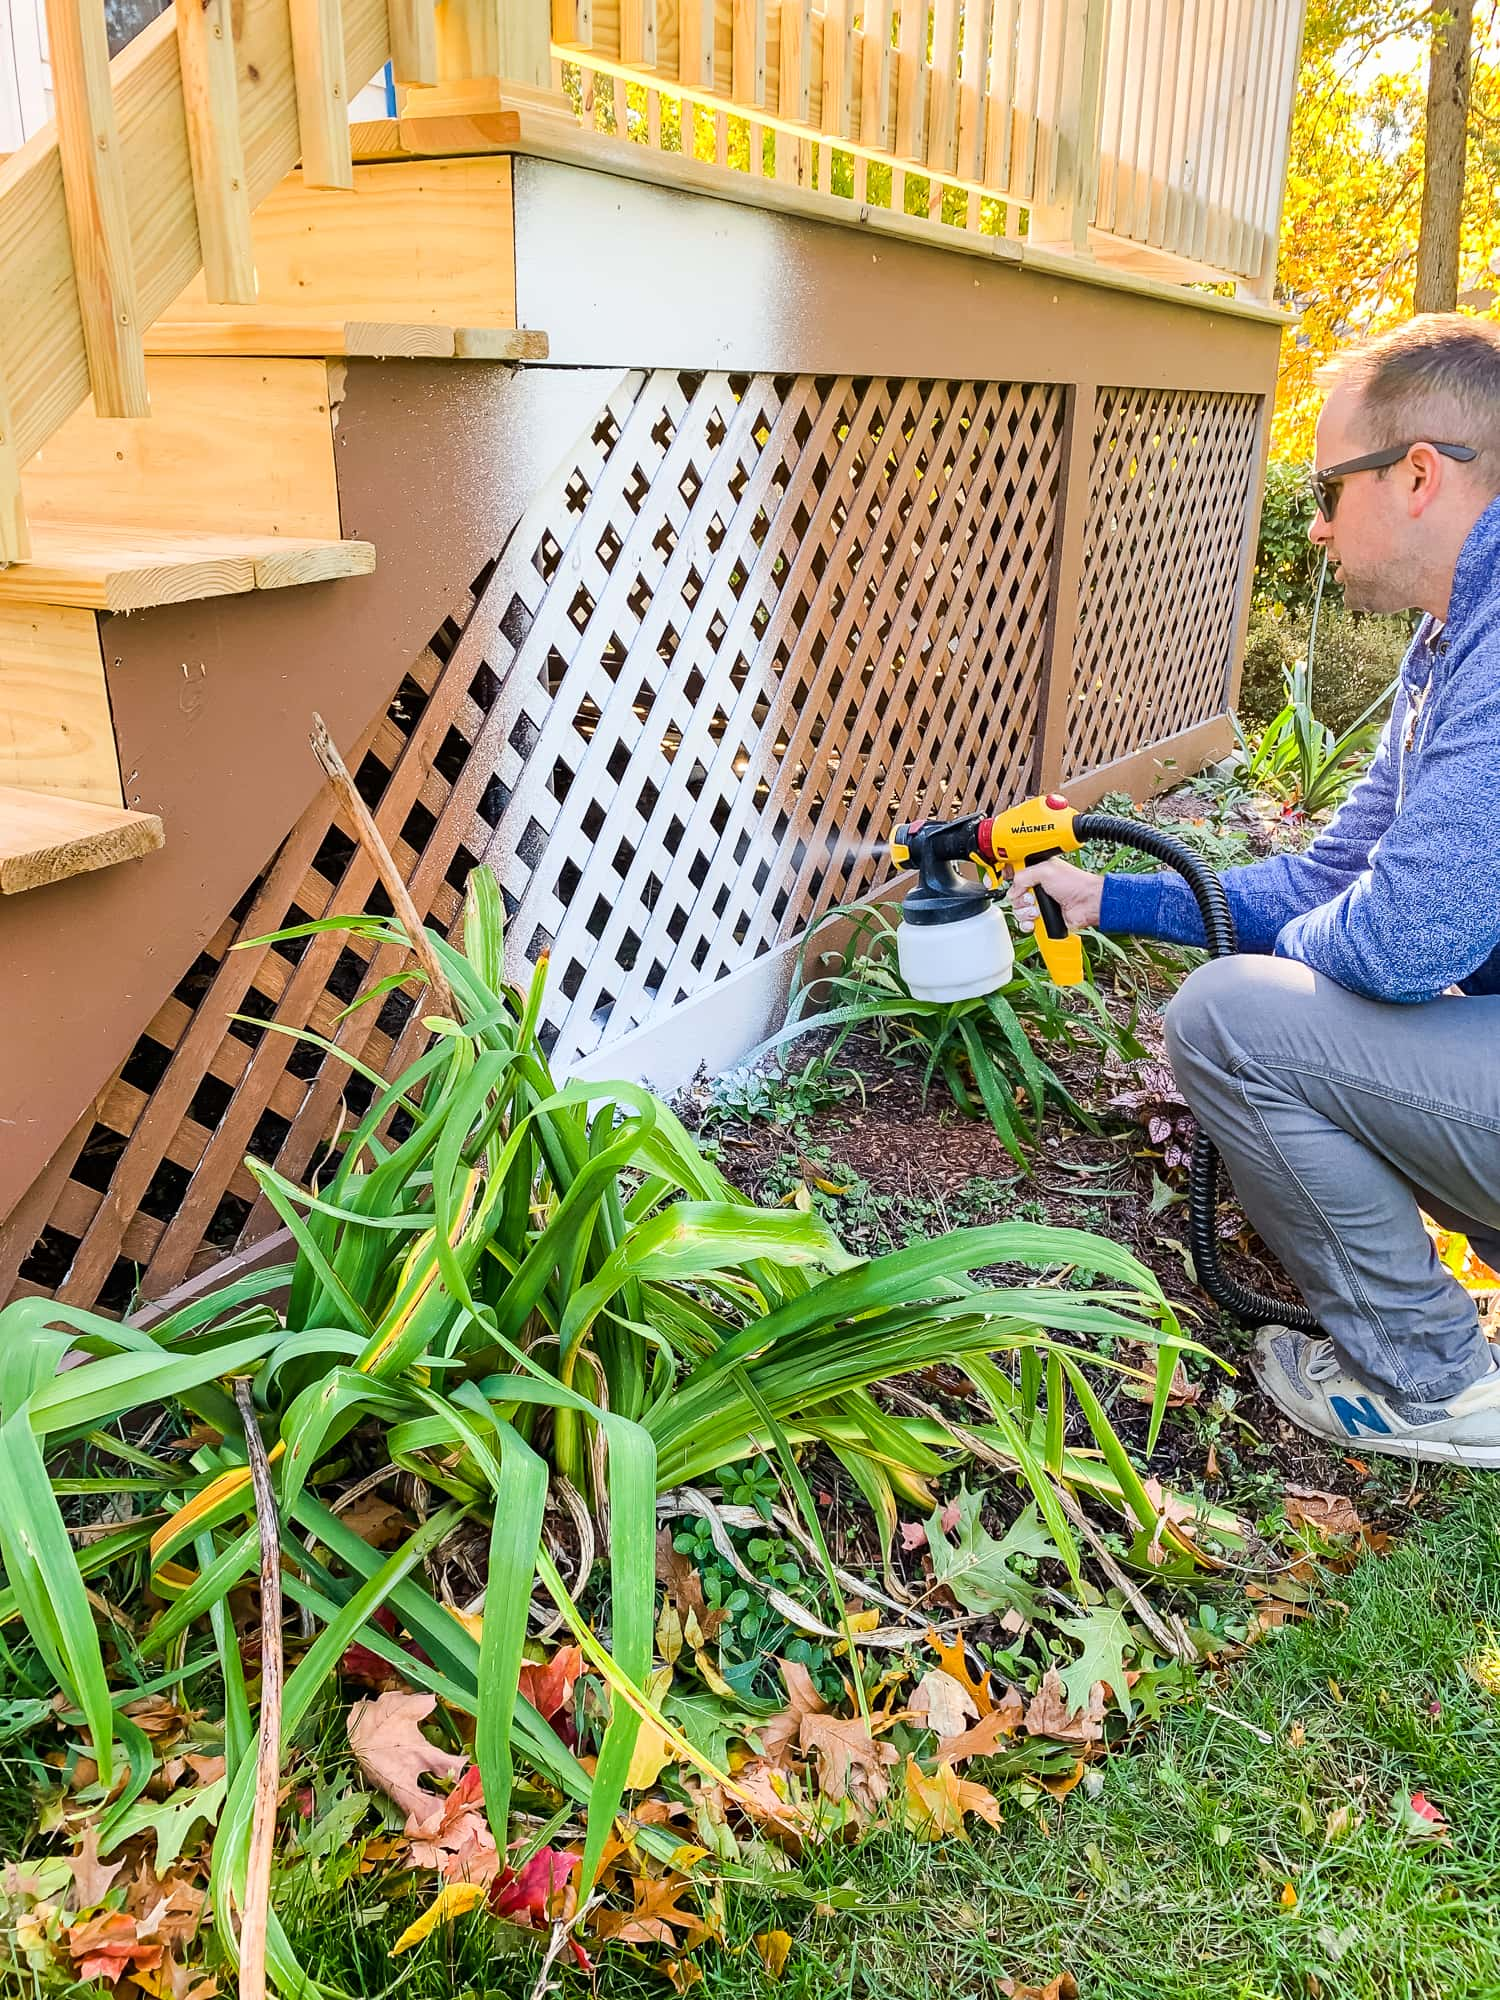 Use Wagner Spraytech paint sprayer to paint the deck white